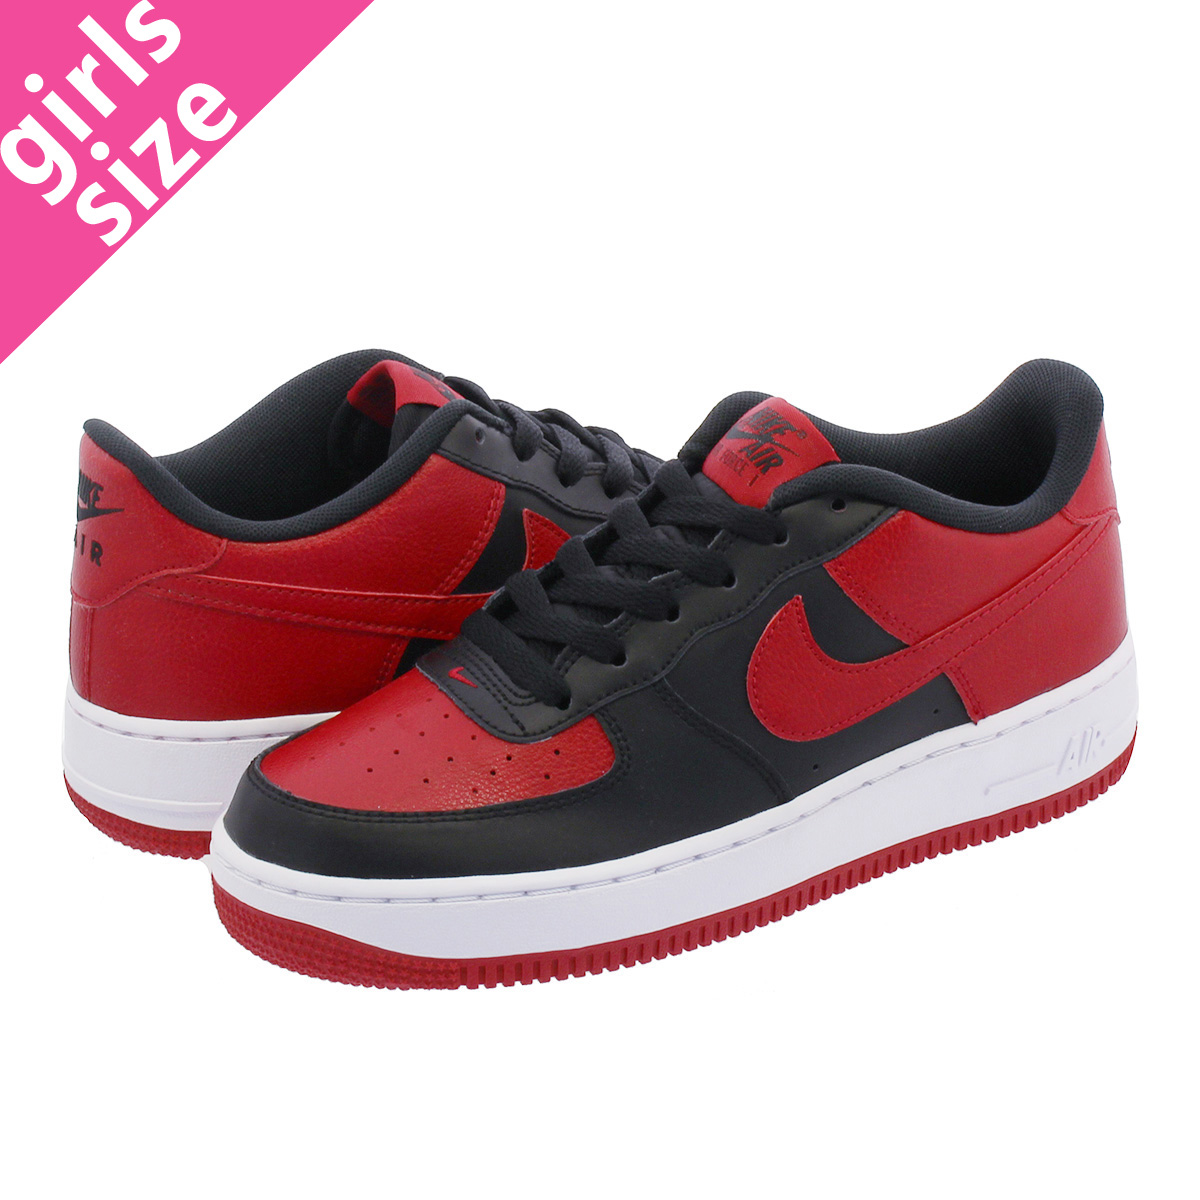 wholesale dealer 9c191 f0db8 NIKE AIR FORCE 1 GS Nike air force 1 GS BLACK GYM RED WHITE ...